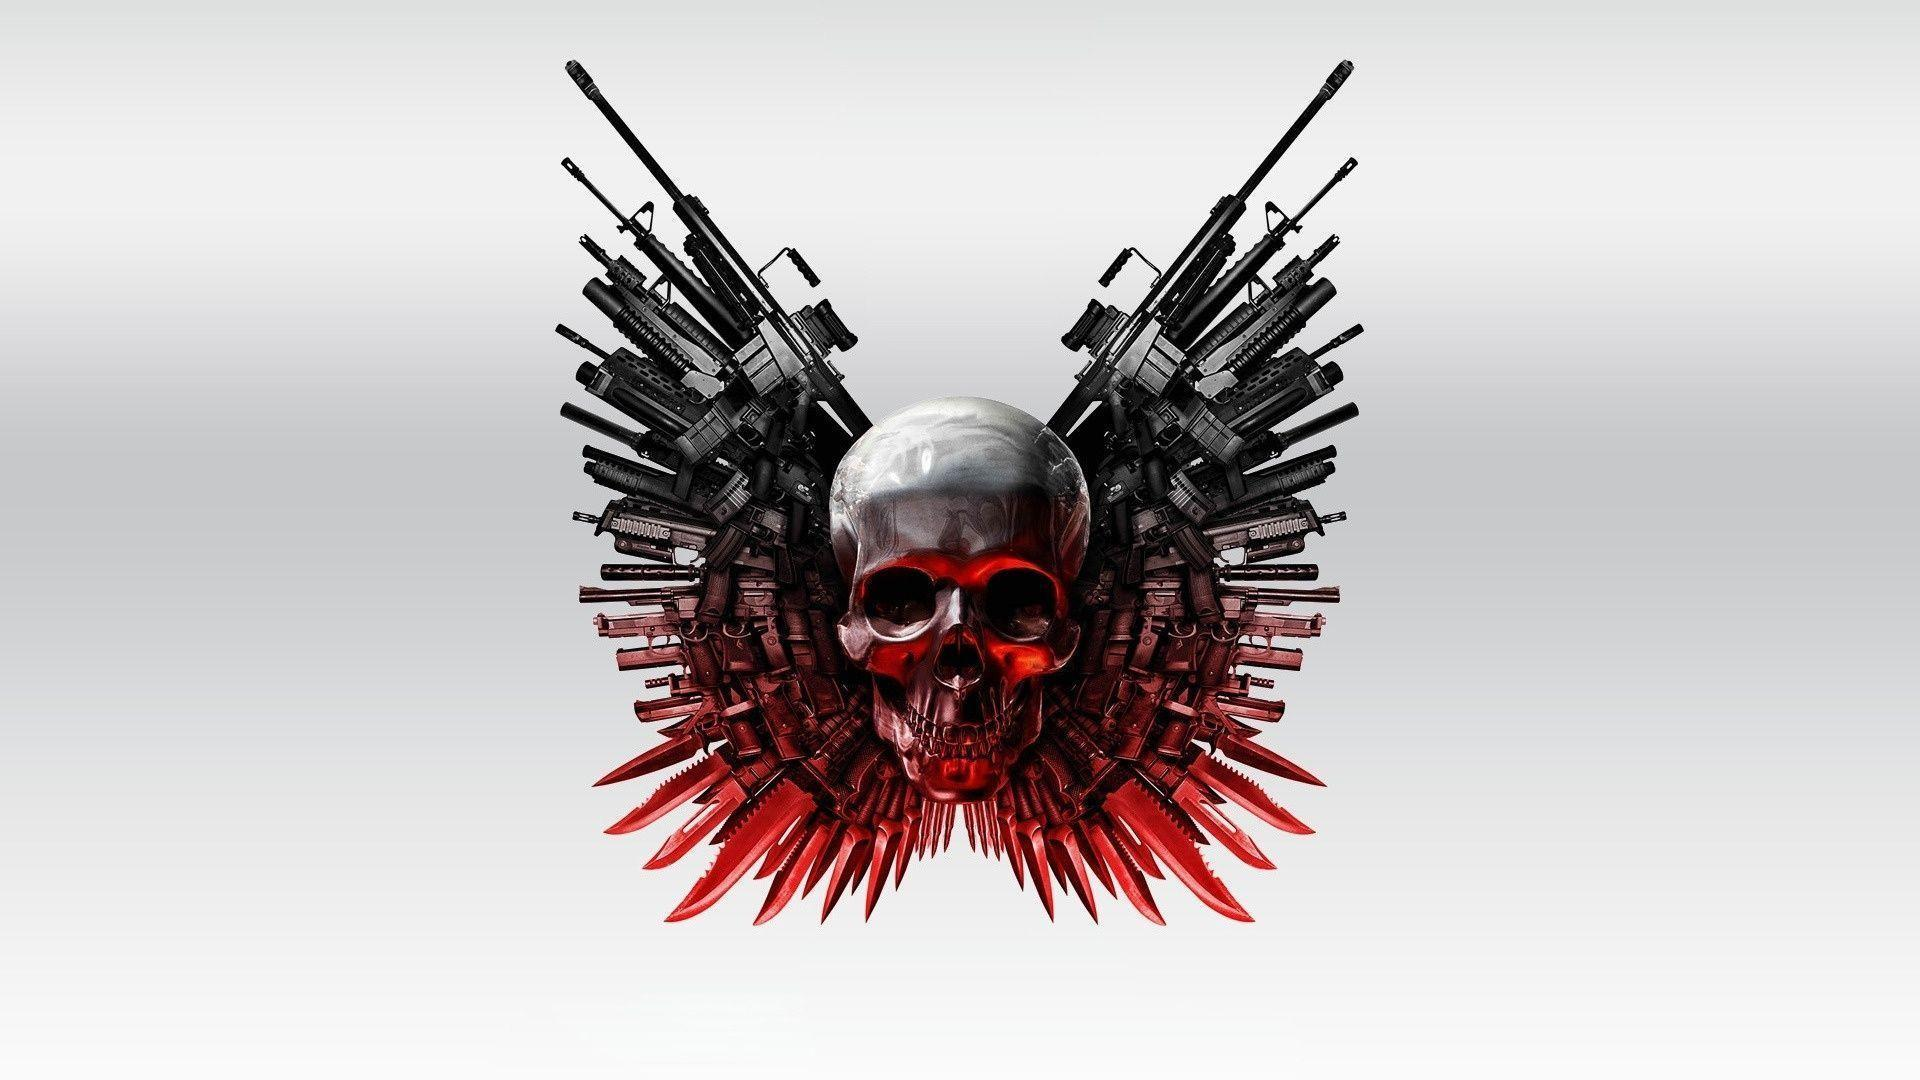 3D Wallpapers: Weapons and skull